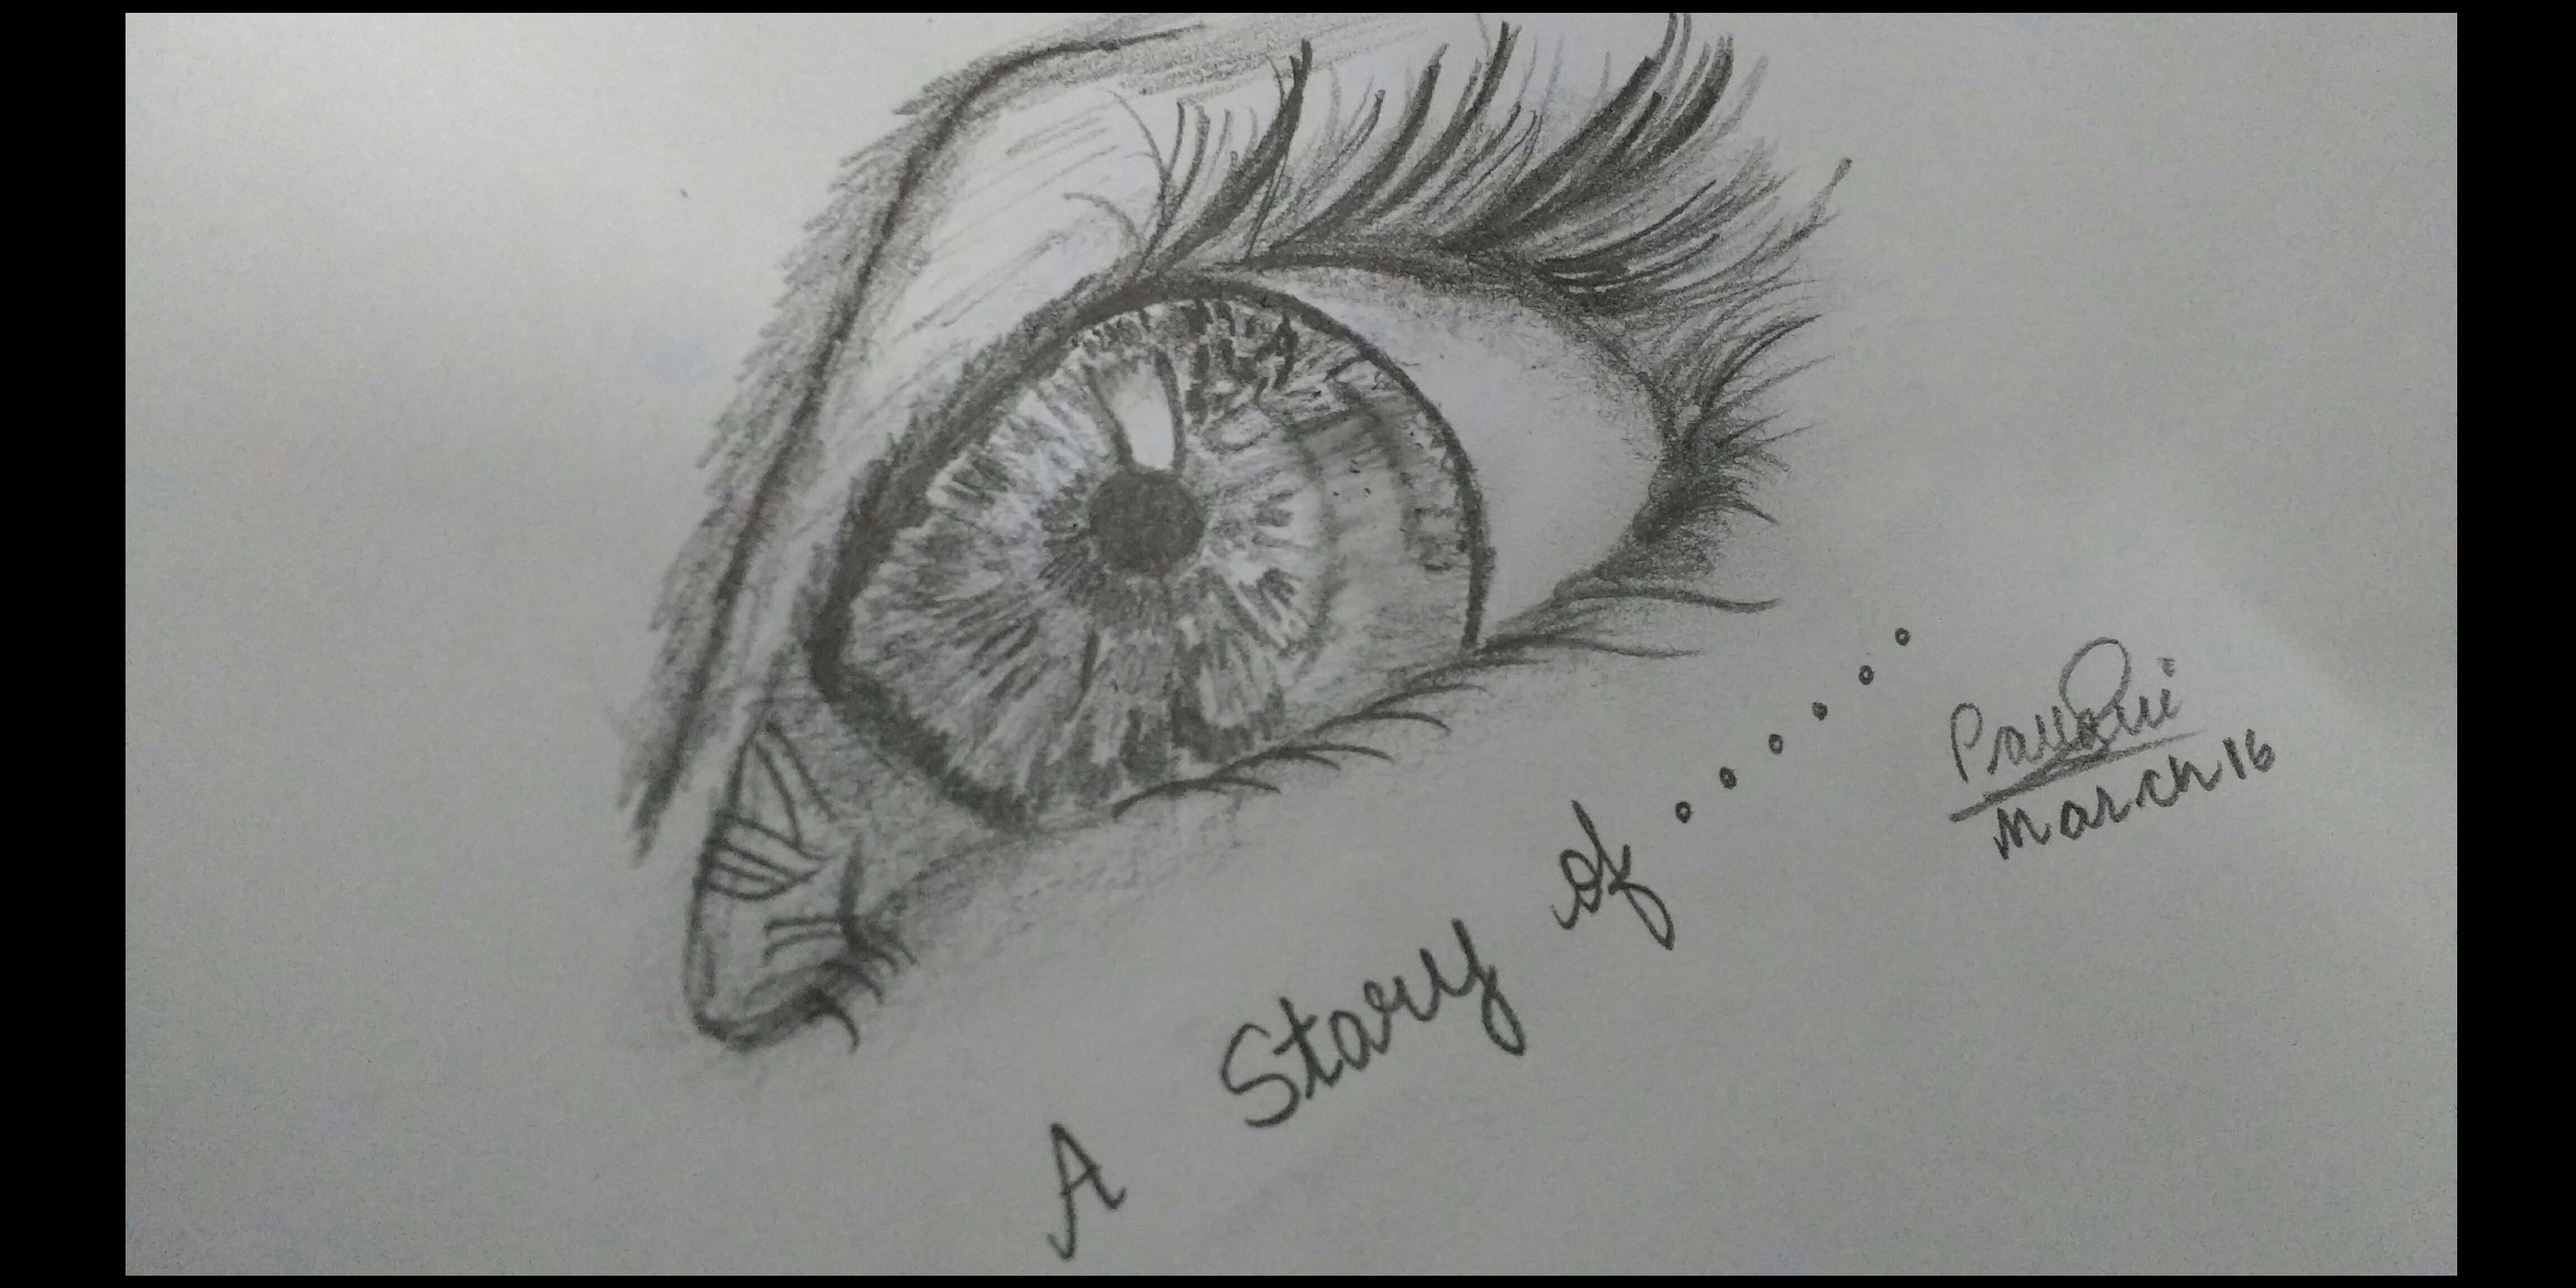 An eye says those things which the mouth often fail to express.